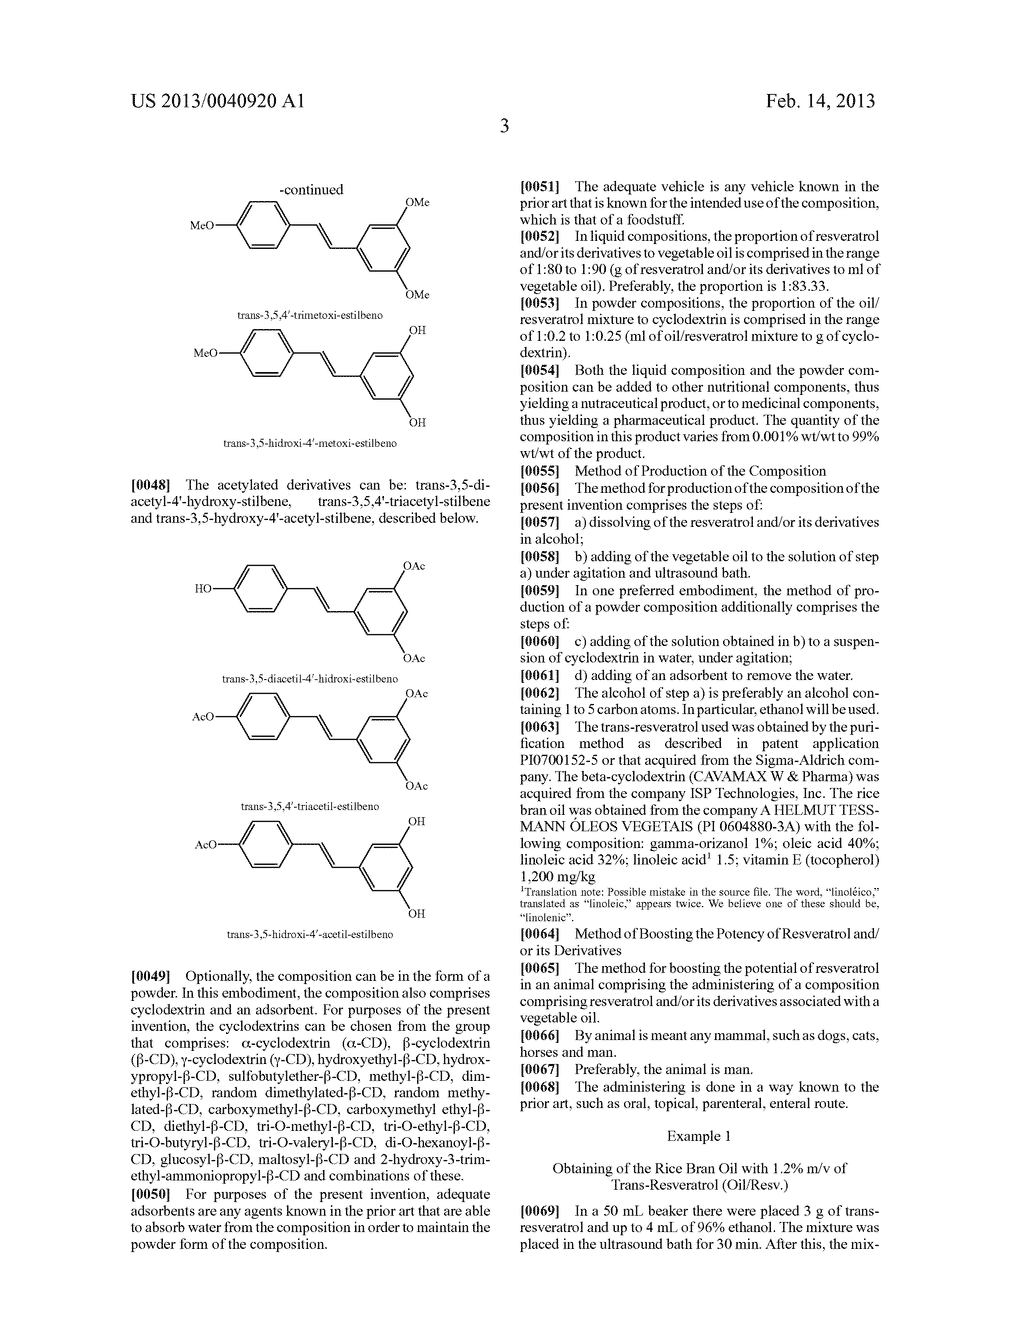 COMPOSITION CONTAINING RESVERATROL AND/OR DERIVATIVES THEREOF AND PLANT     OIL, PROCESS FOR PRODUCING SAID COMPOSITION, NUTRACEUTICAL AND/OR     PHARMACEUTICAL PRODUCT, AND METHOD FOR ENHANCING THE POTENTIAL OF     RESVERATROL - diagram, schematic, and image 09